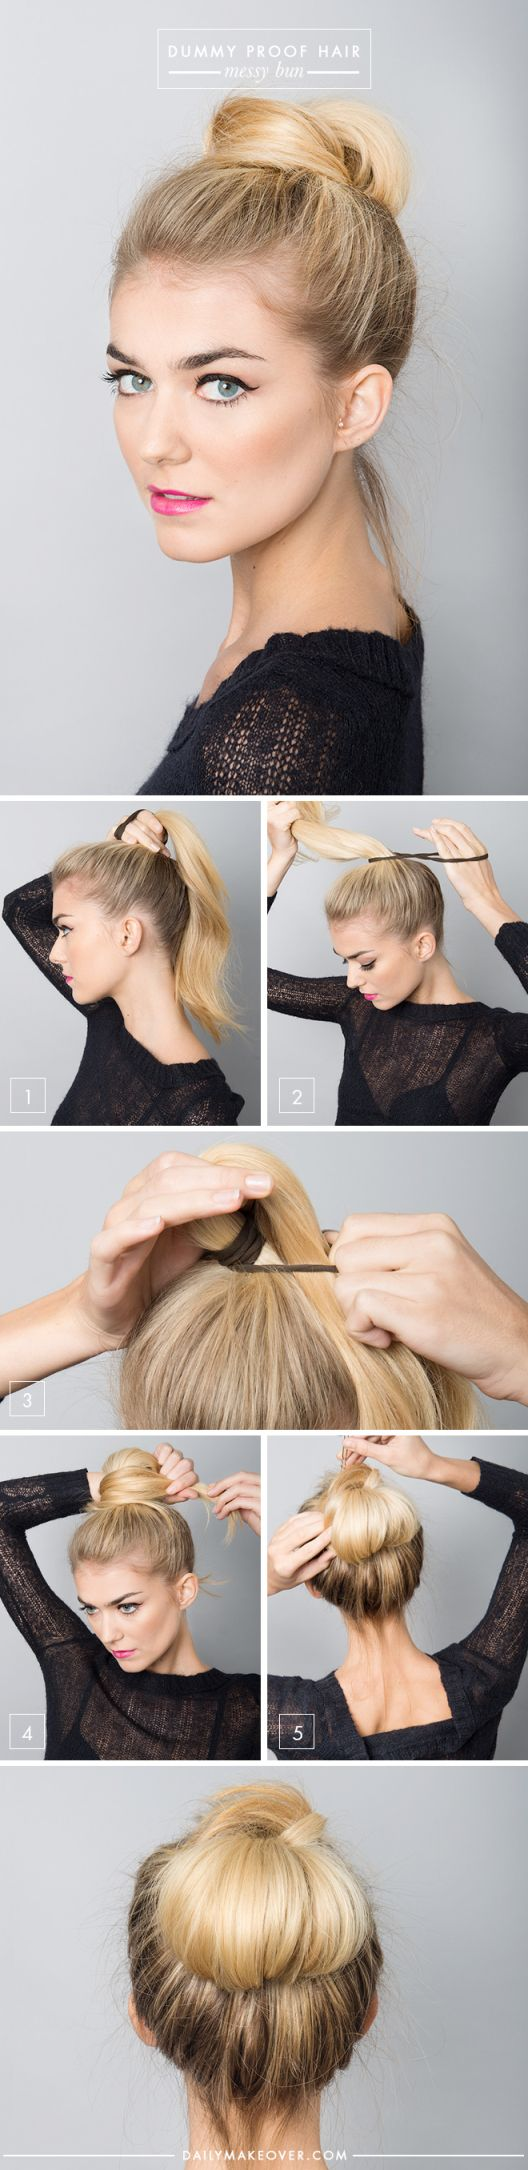 5 dummy proof hairstyles that everyone can master easy bun 5 dummy proof hairstyles that everyone can master daily makeover baditri Choice Image